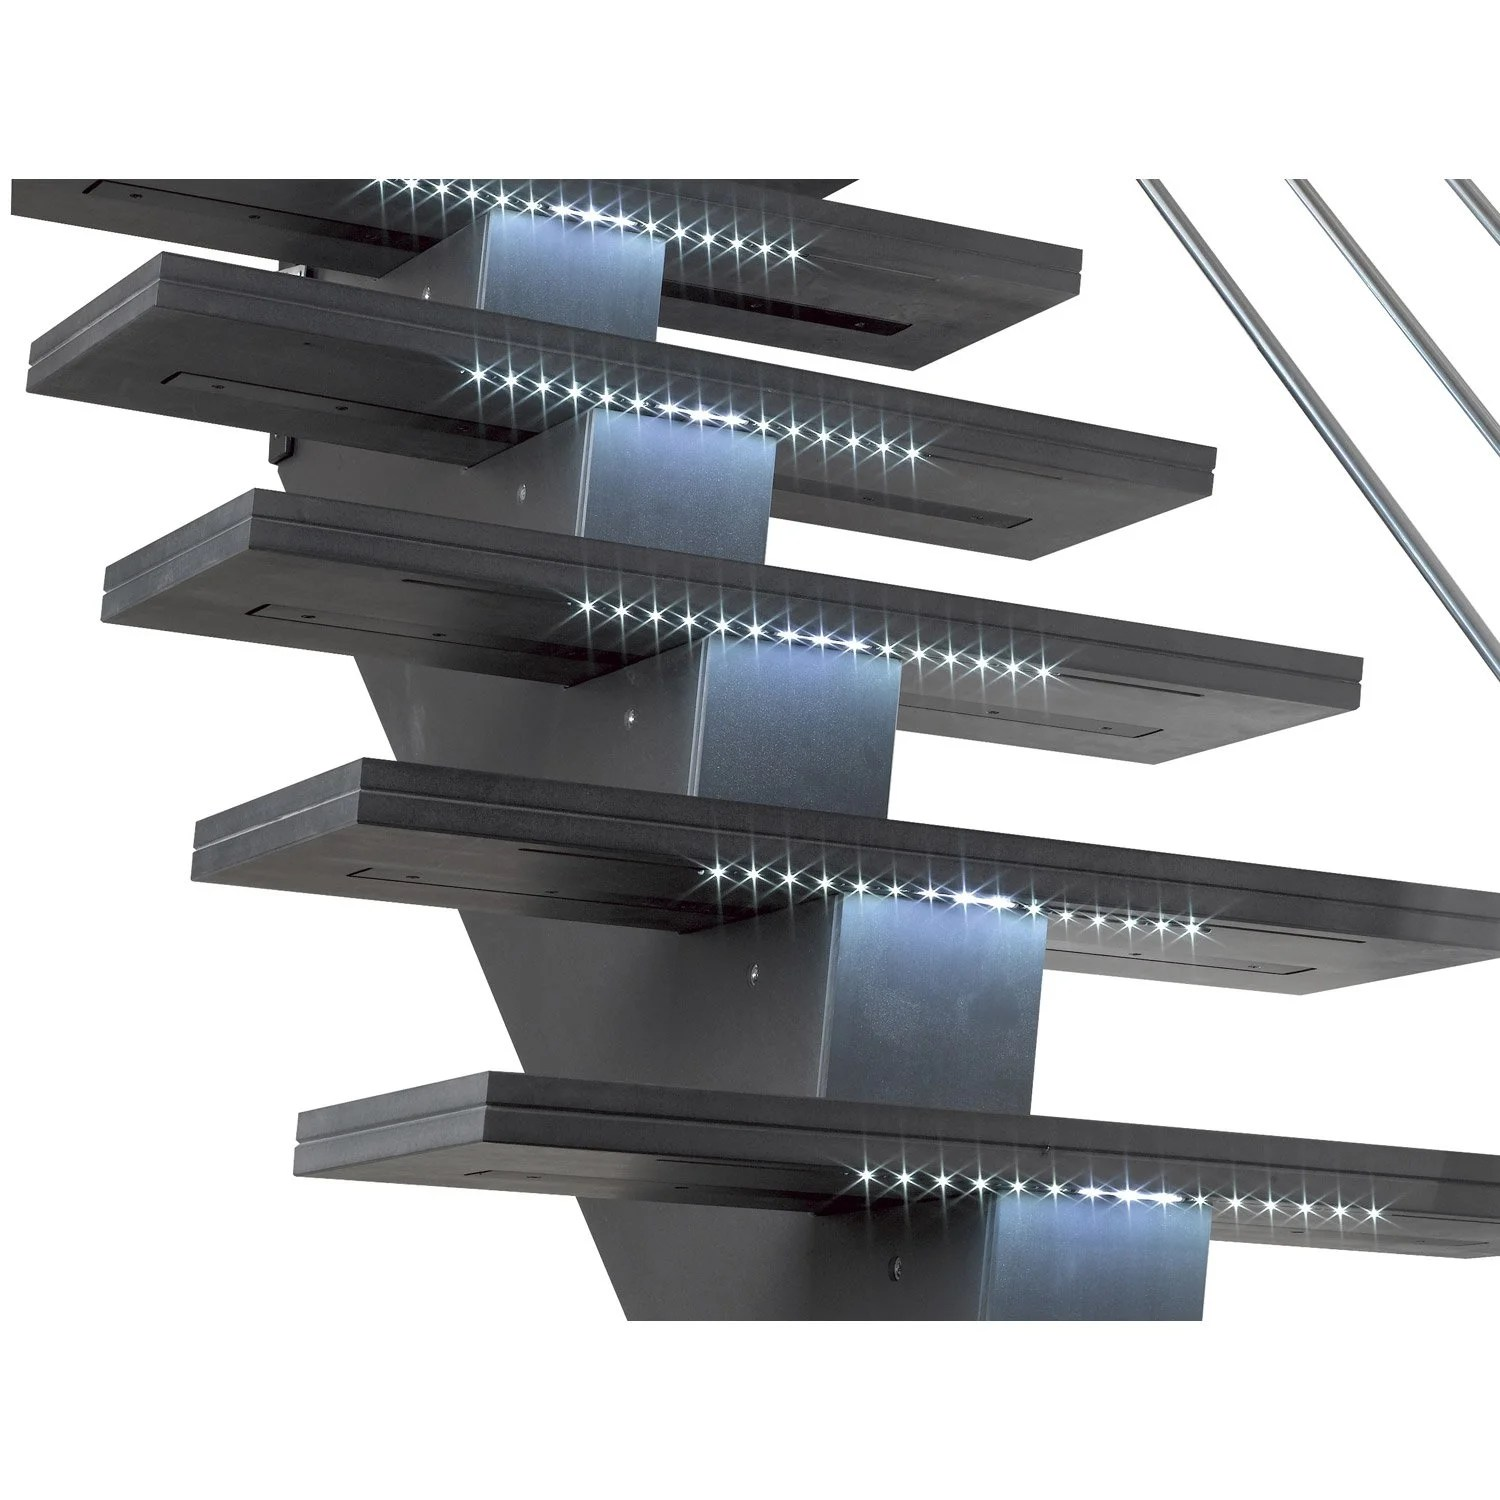 Escaliers Leroy Merlin Kit Led Pour Escalier Gomera Leroy Merlin